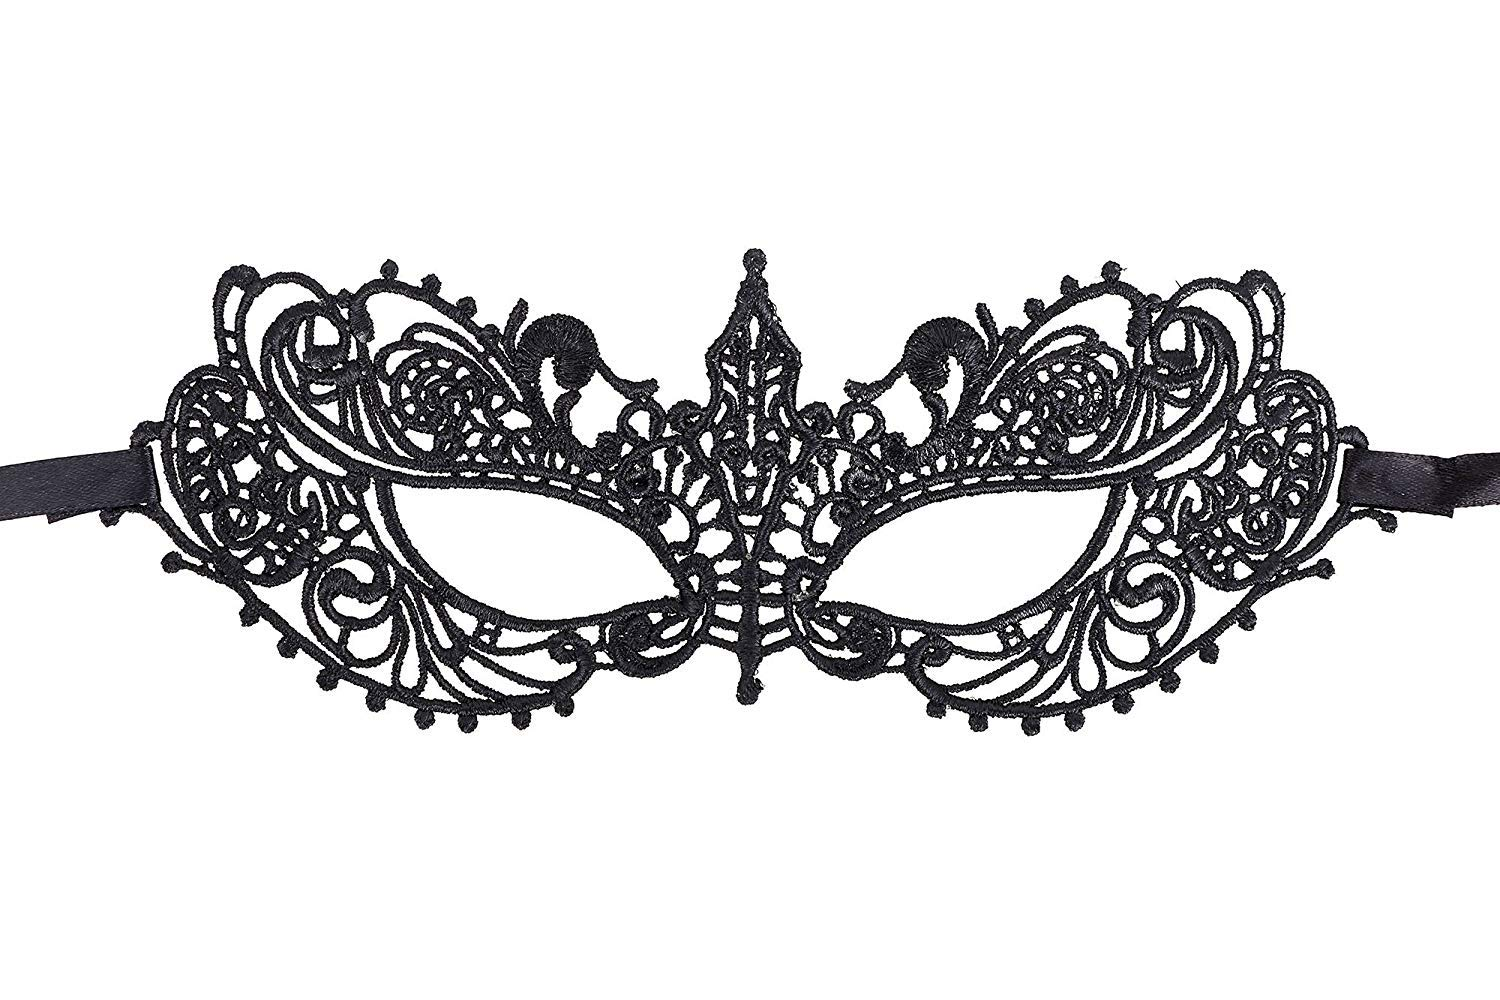 Lace Mask Masquerade Mask for Women Party Black Lace Soft Eye Good Brothers